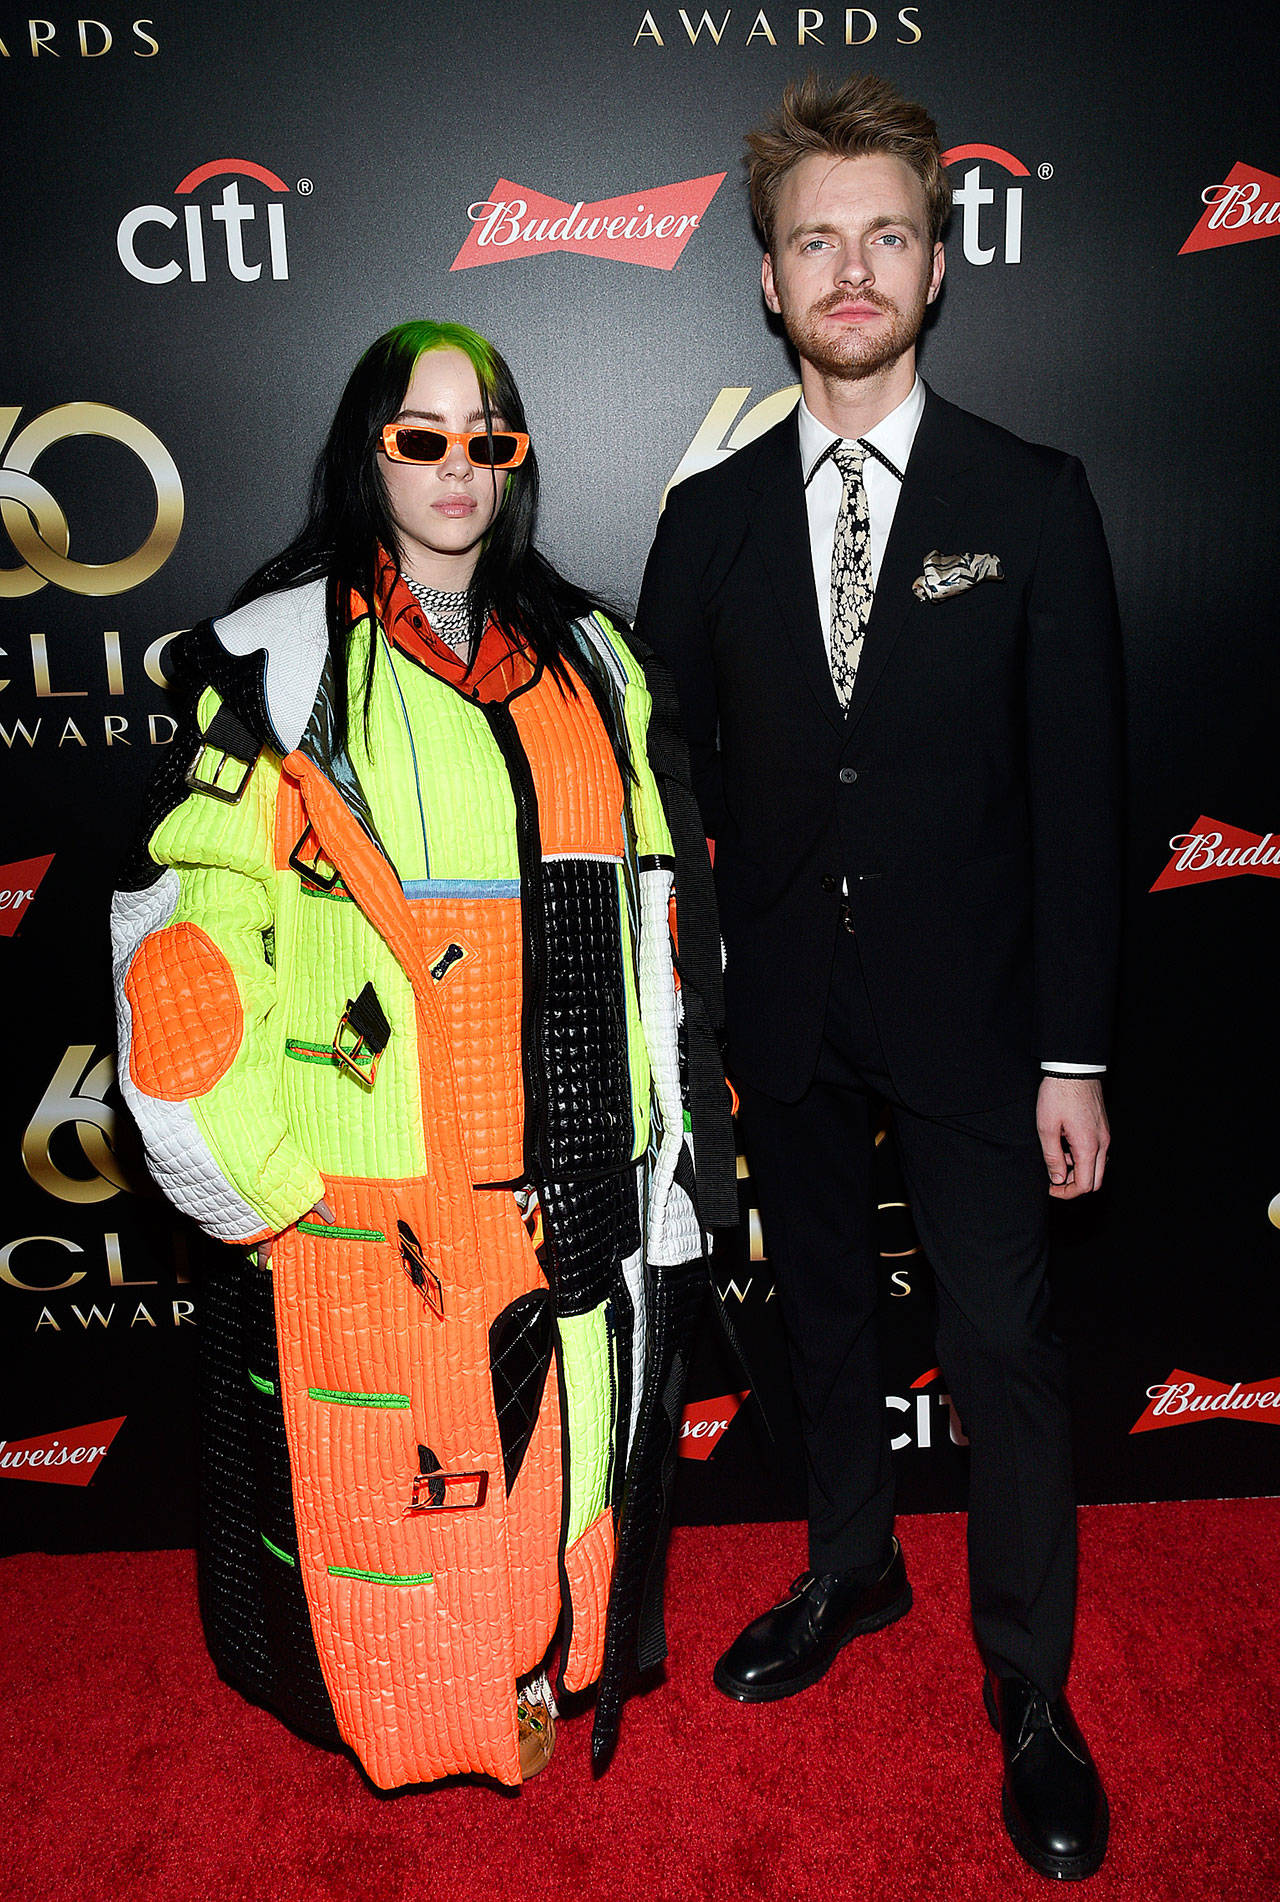 Billie Eilish earned six Grammy nominations on Nov. 20, and Finneas O'Connell, her brother-producer-engineer, earned five nominations. (Associated Press file)